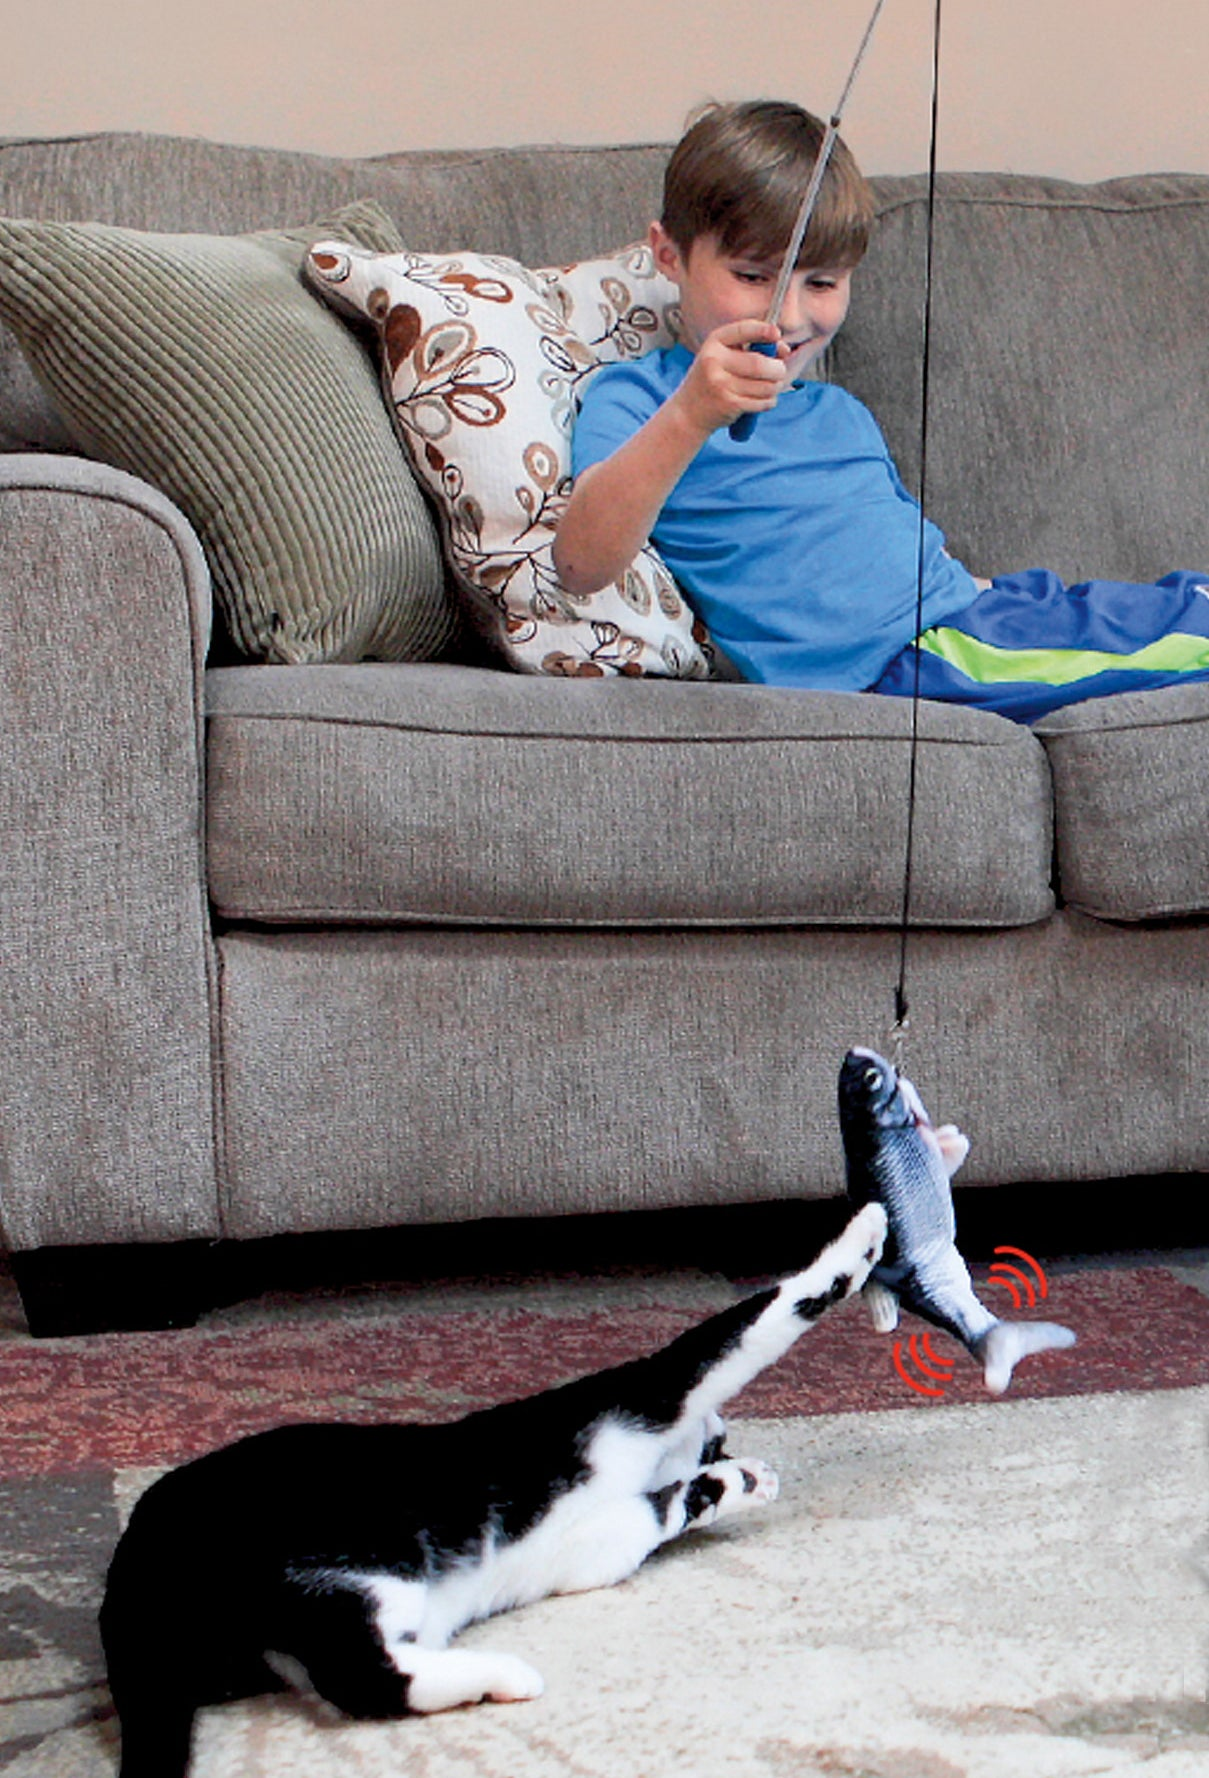 kid using a fishing pole to tease cat with flippity fish toy